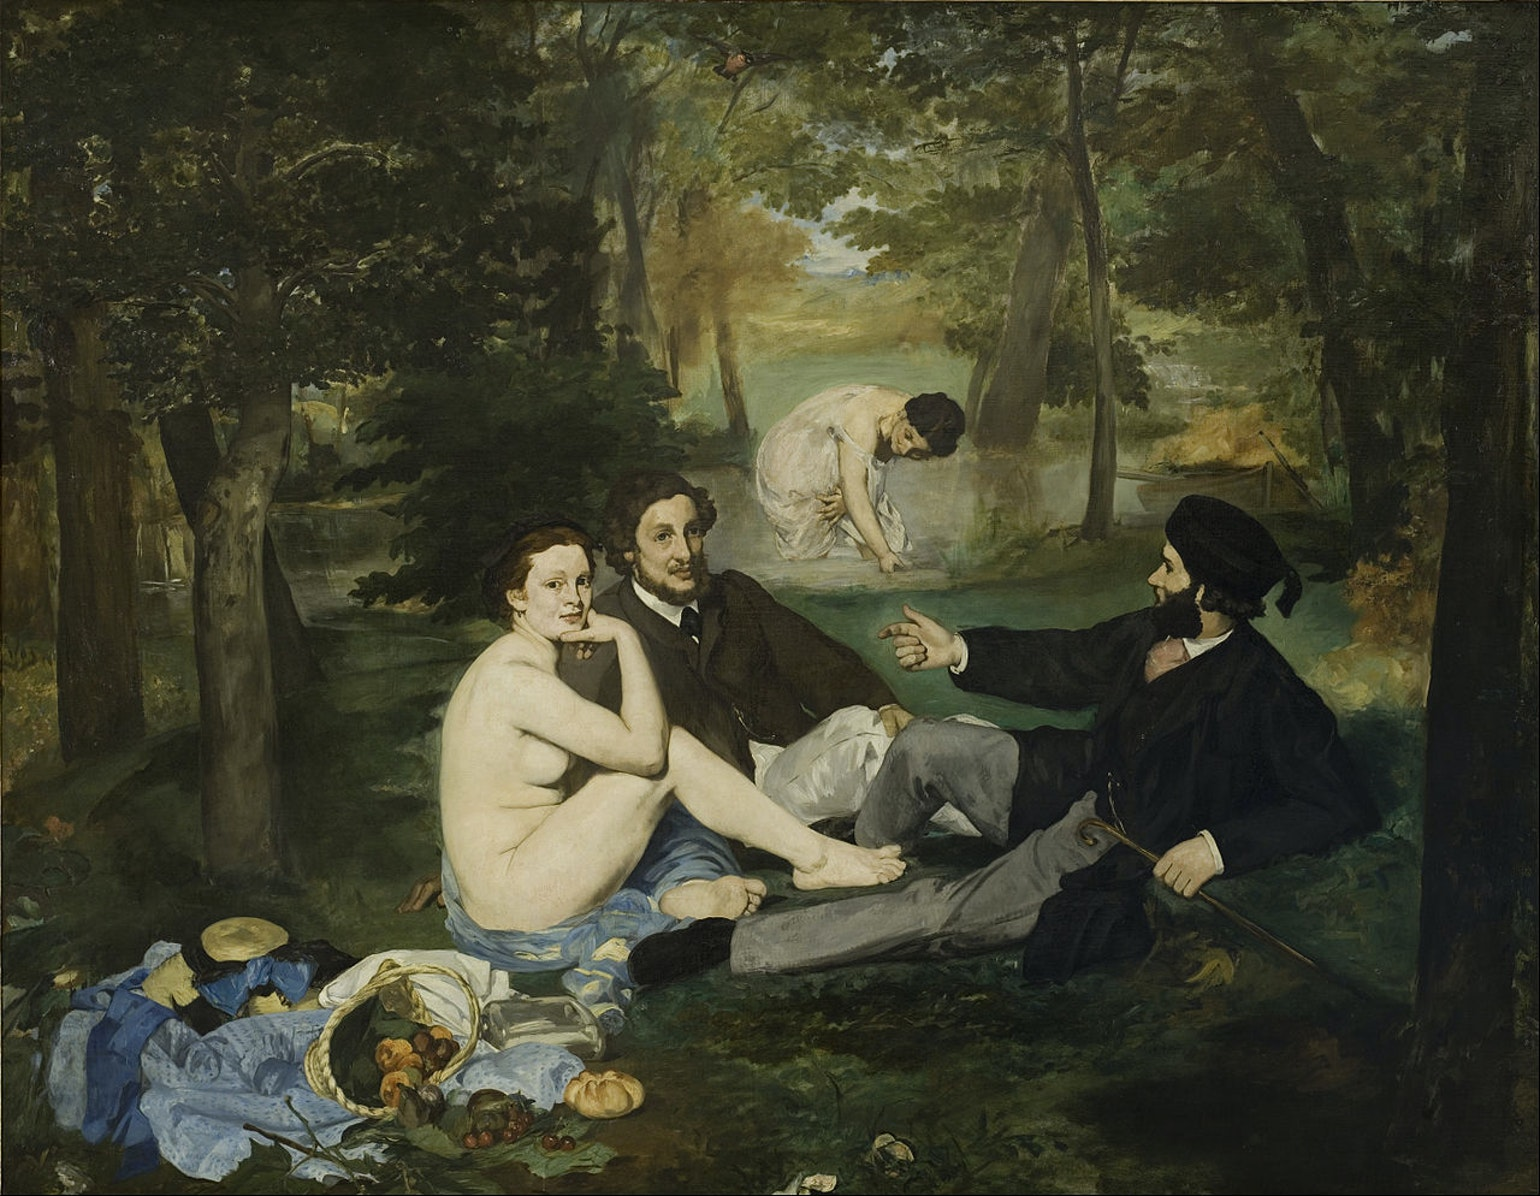 1280px-Edouard_Manet_-_Luncheon_on_the_Grass_-_Google_Art_Project